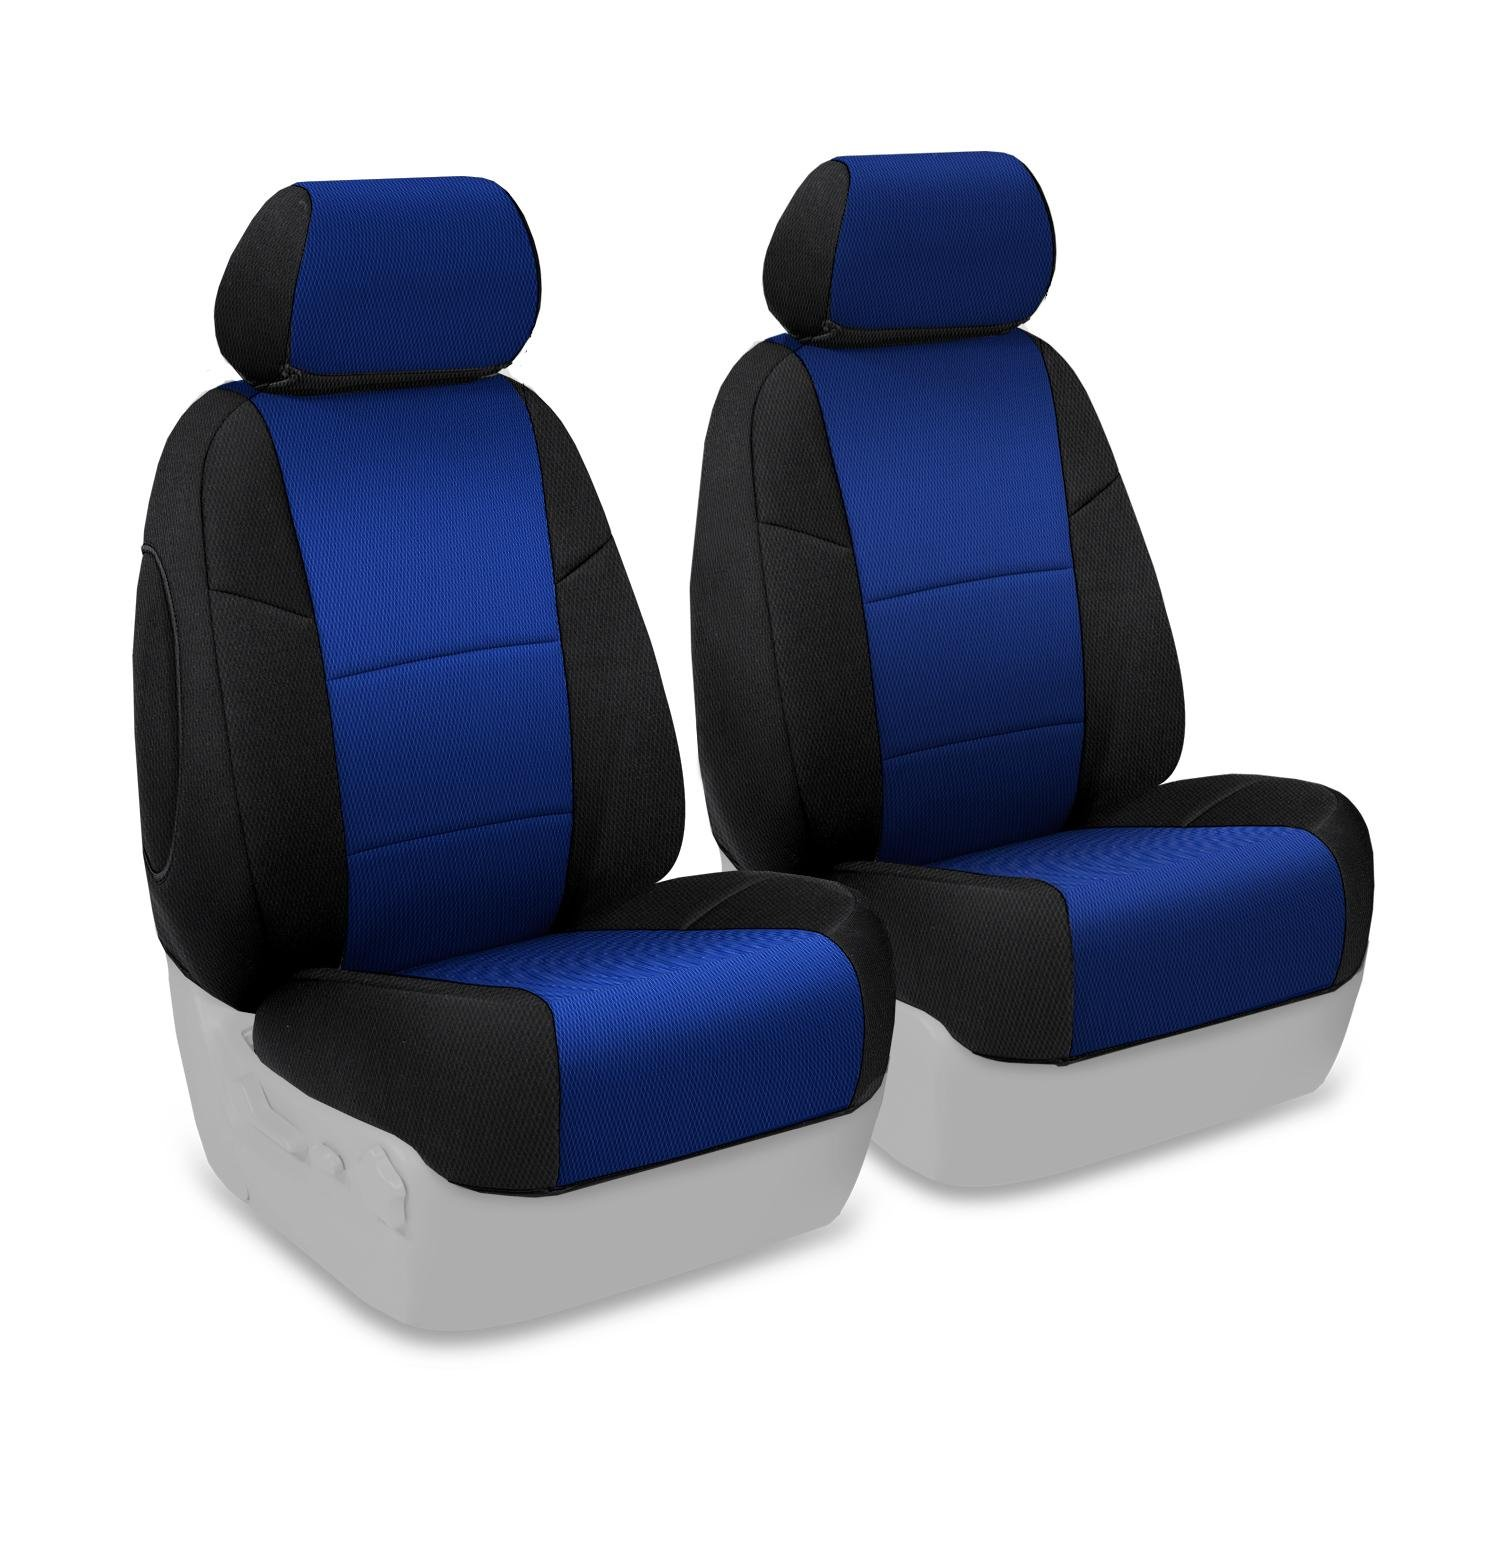 Coverking Custom Fit Front 50/50 Bucket Seat Cover for Select Mazda 3 Models - Spacermesh 2-Tone (Blue with Black Sides)